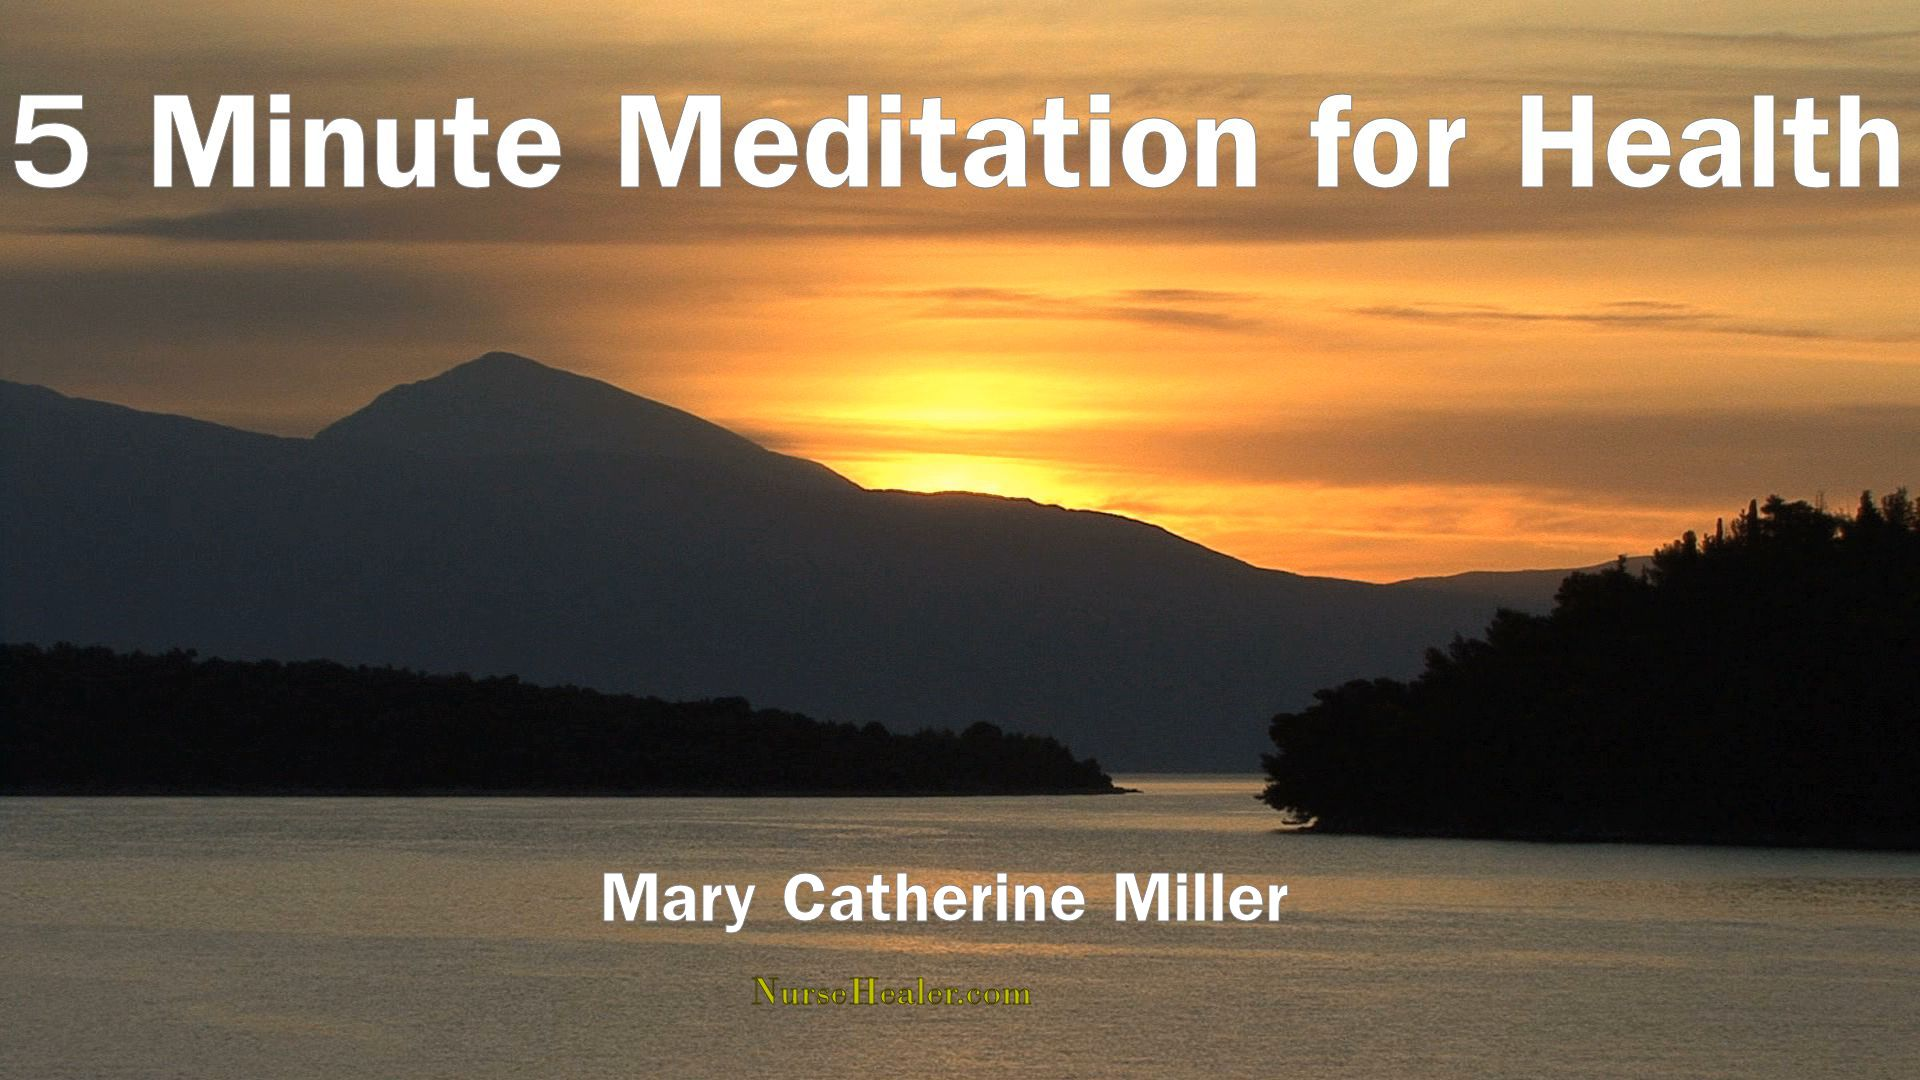 5 Minute Meditation for Health